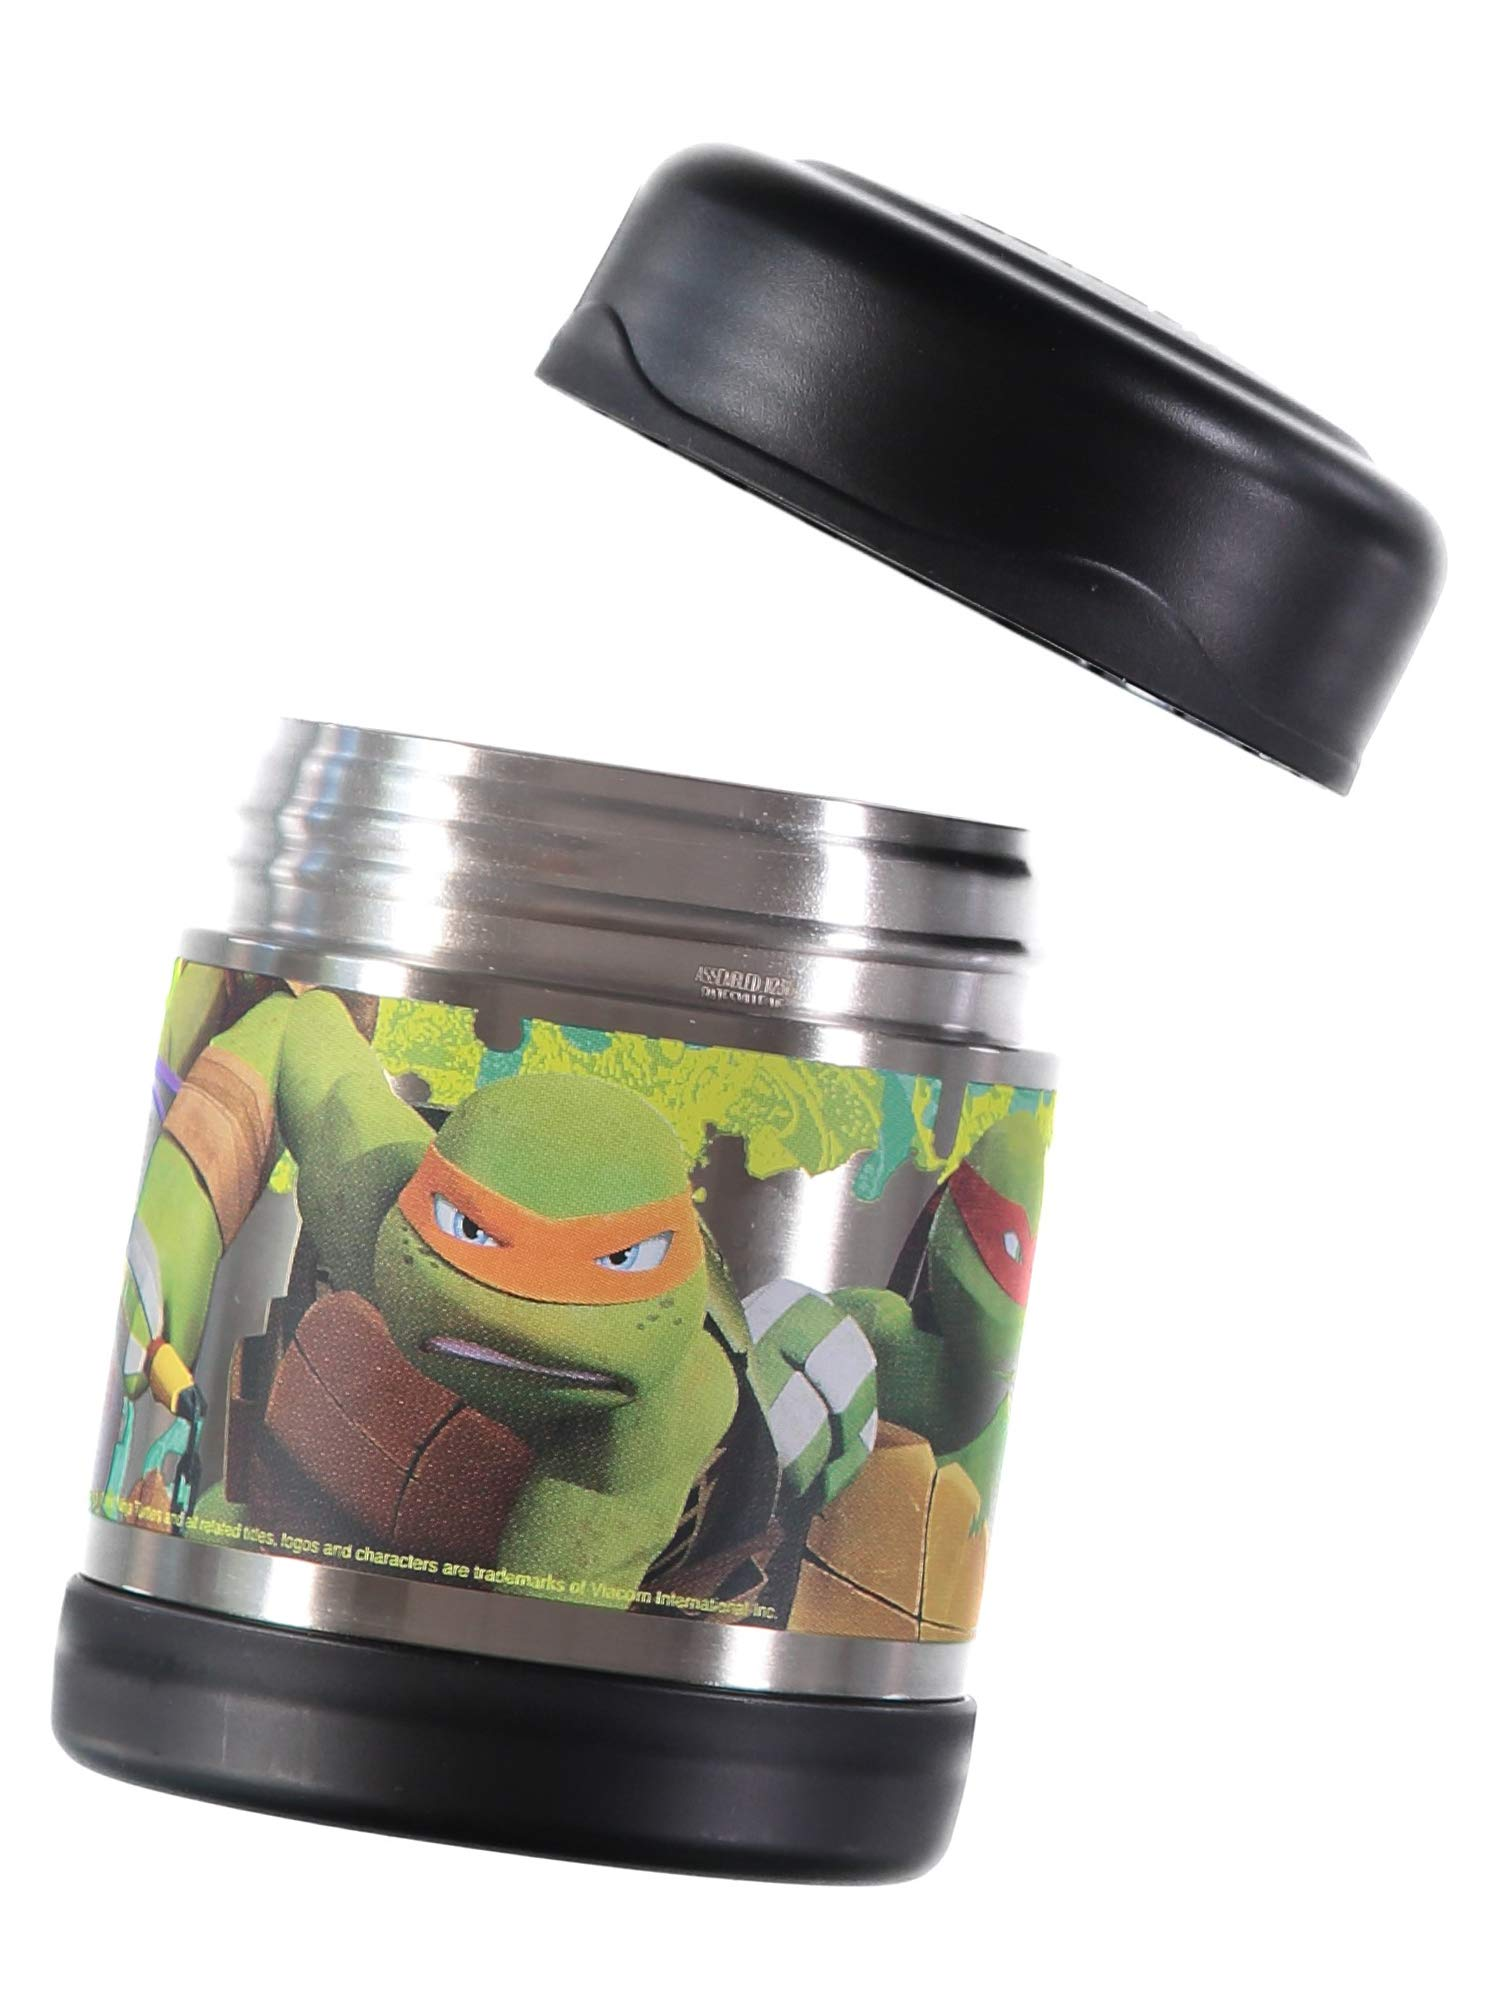 Thermos Funtainer 10 Ounce Food Jar, Teenage Mutant Ninja Turtles by Thermos (Image #2)